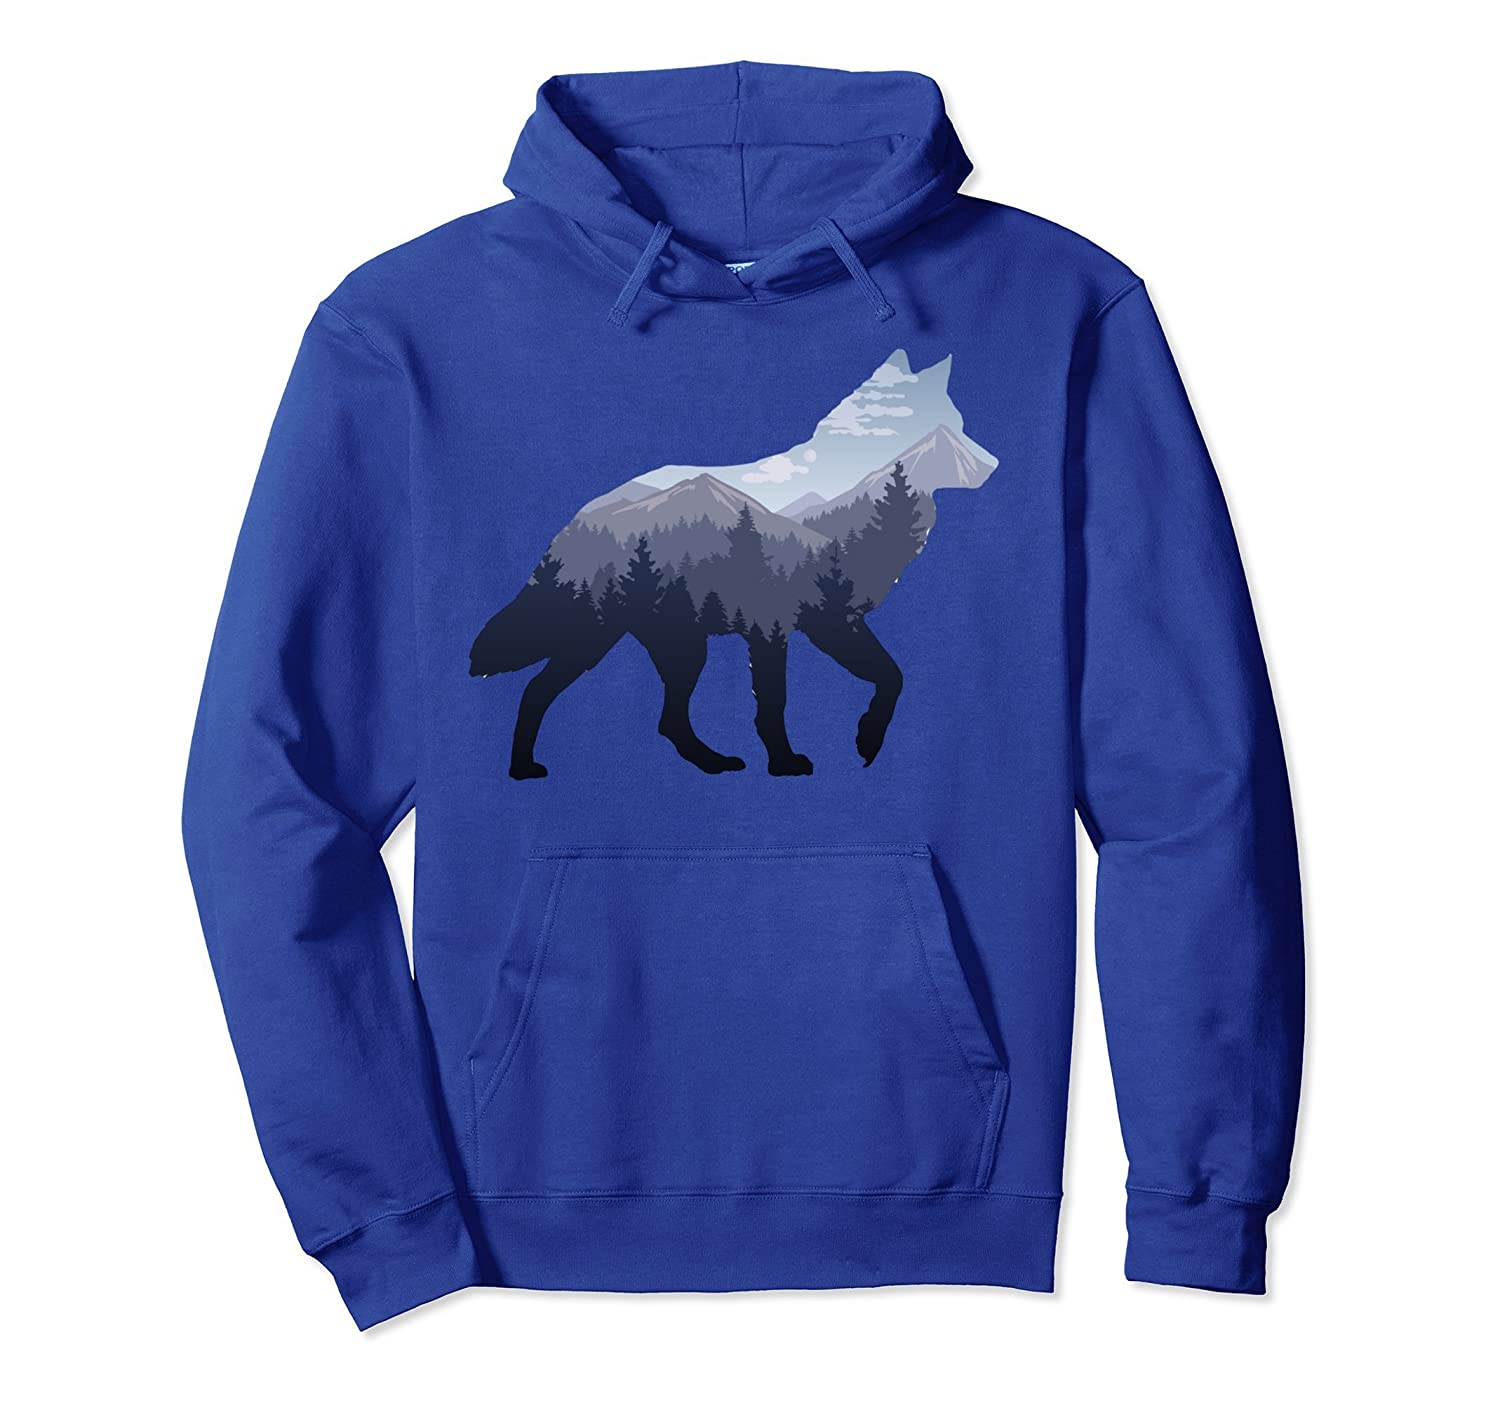 5d0e6e4dc9f Lone Wolf Survives The Mountain Silhouette Art Hoodie Shirt-Colonhue